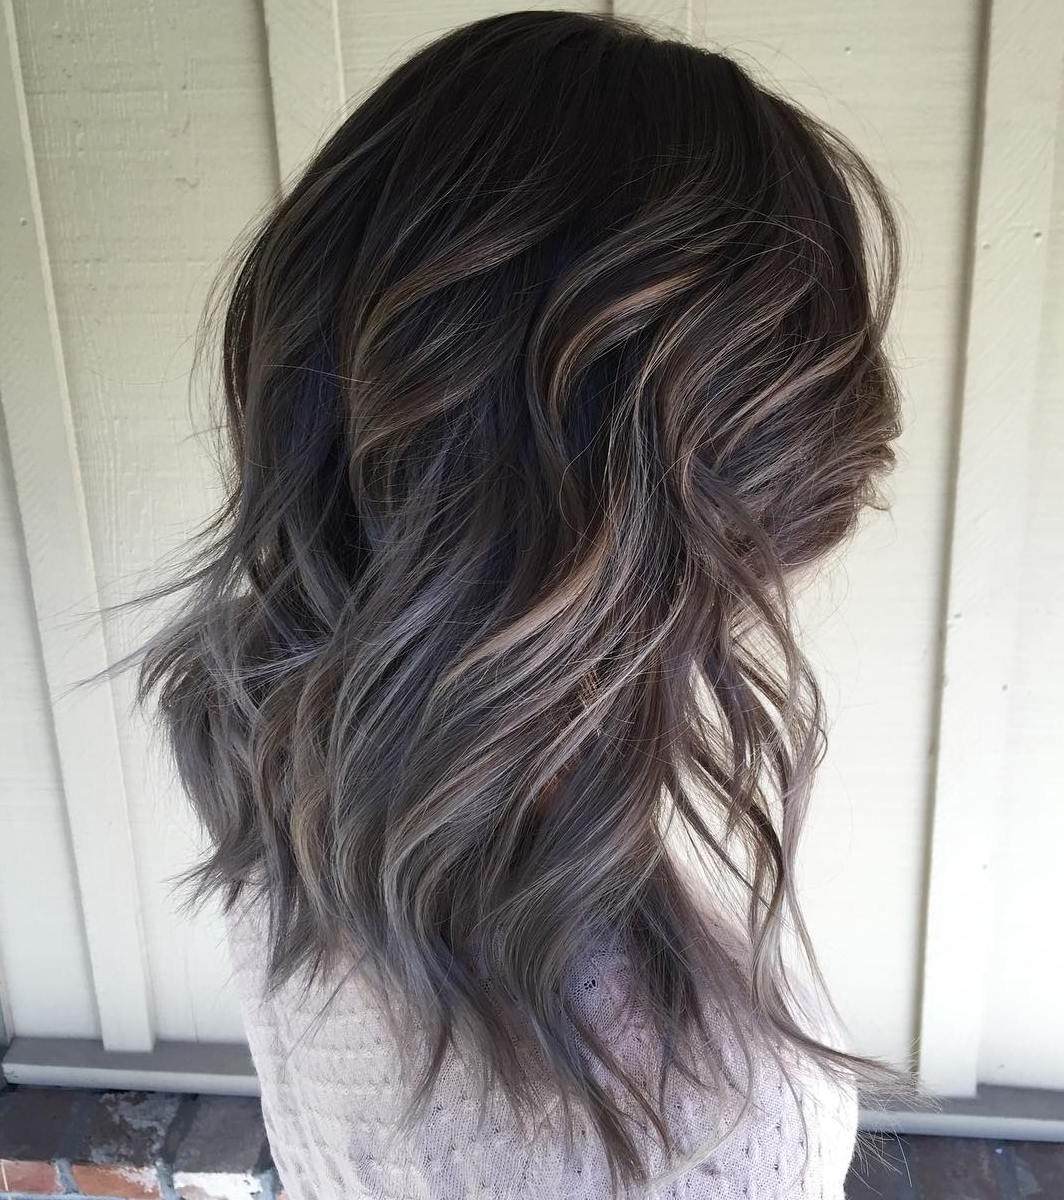 Current Dark Blonde Into White Hairstyles Inside 45 Ideas Of Gray And Silver Highlights On Brown Hair (View 10 of 20)